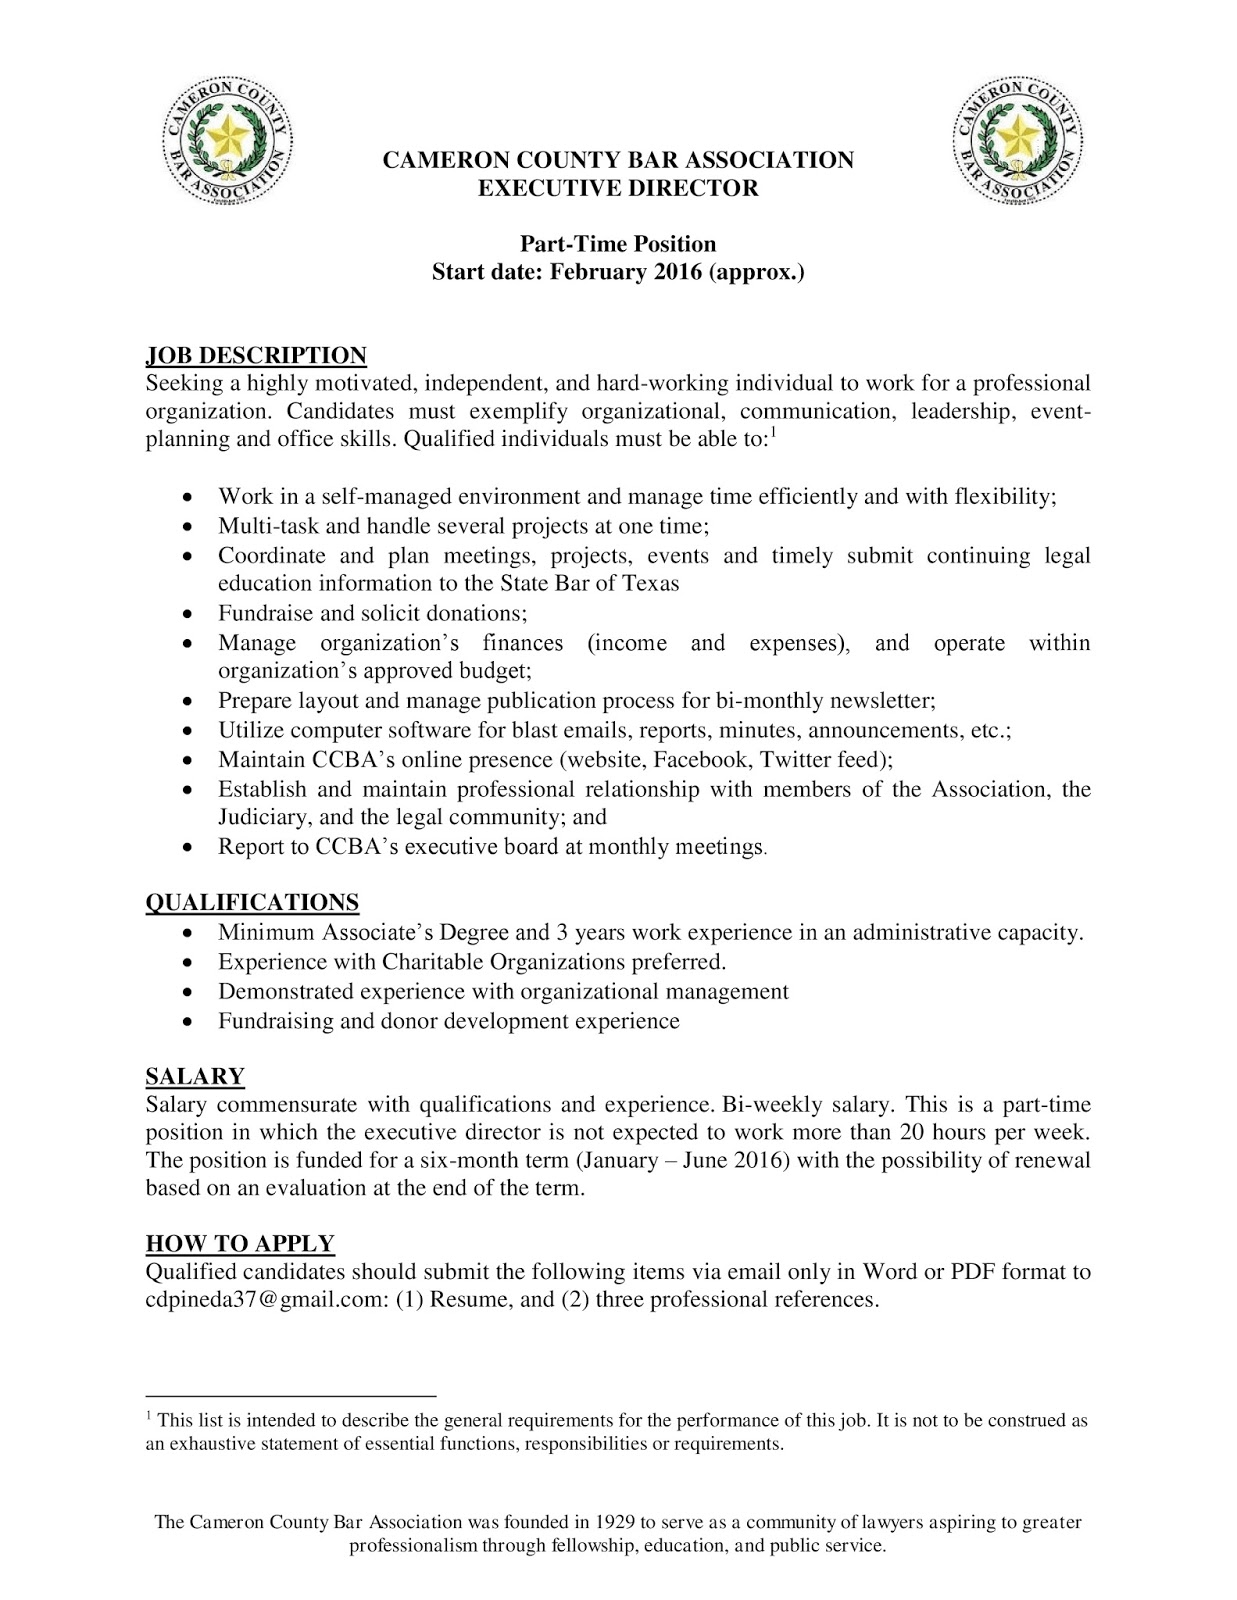 Click Here For A PDF Copy Of The Job Announcement